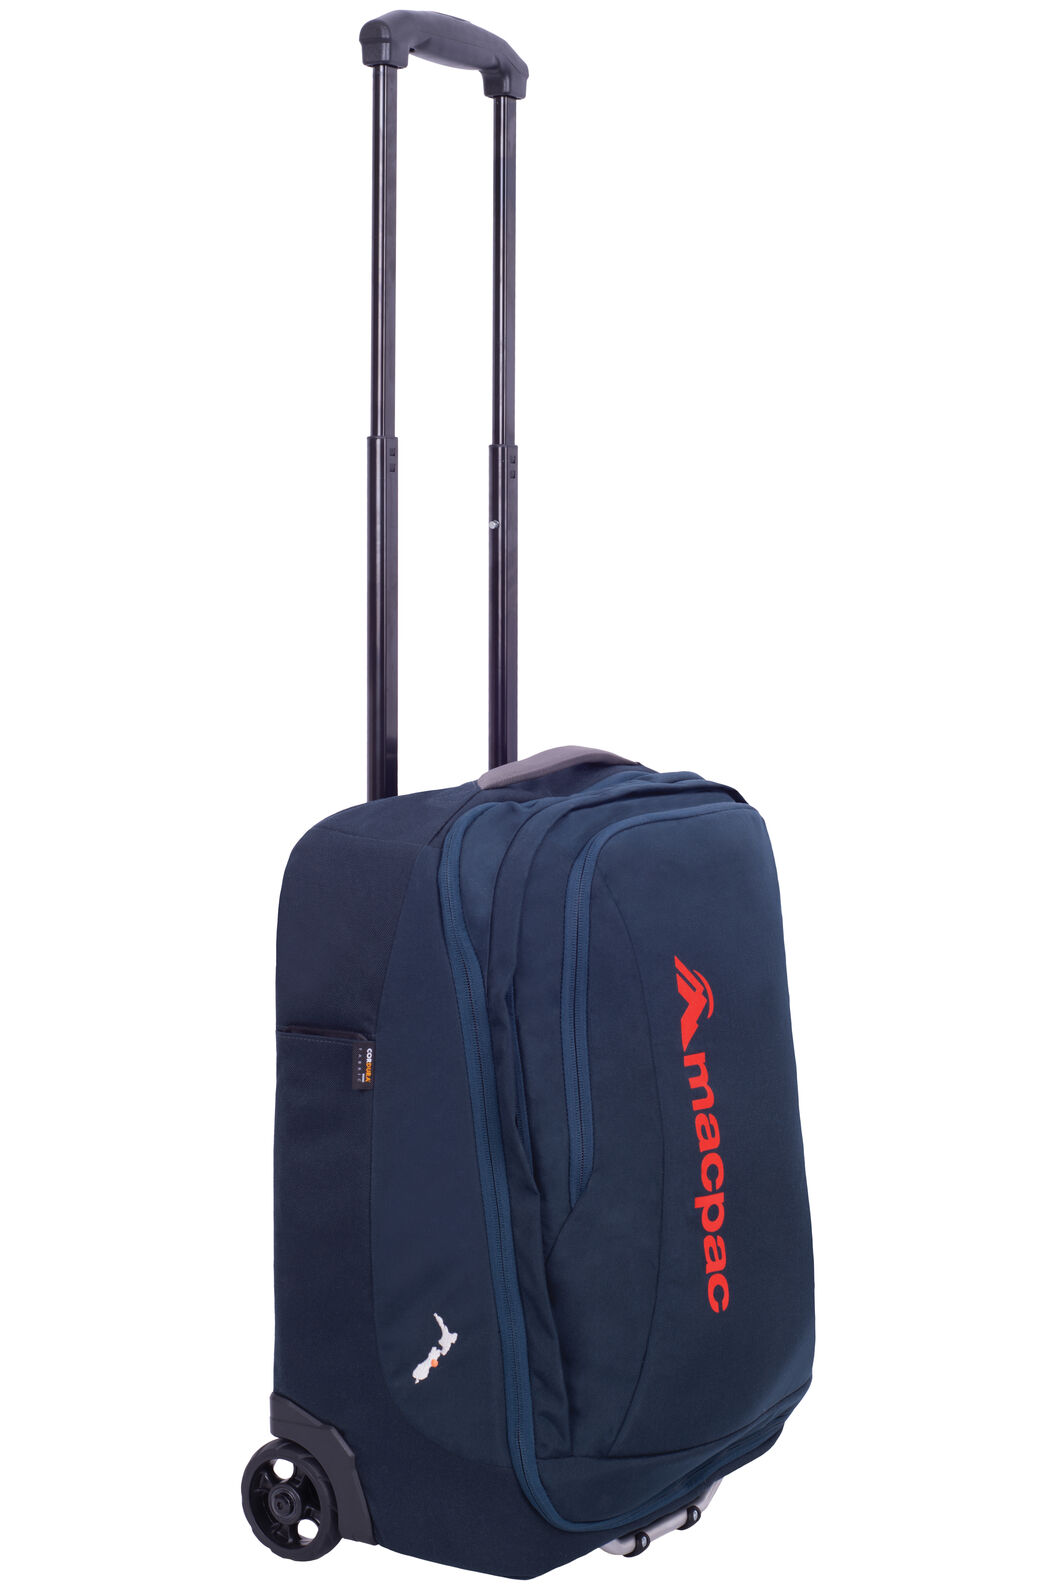 Macpac Global 35L Travel Bag, Carbon, hi-res